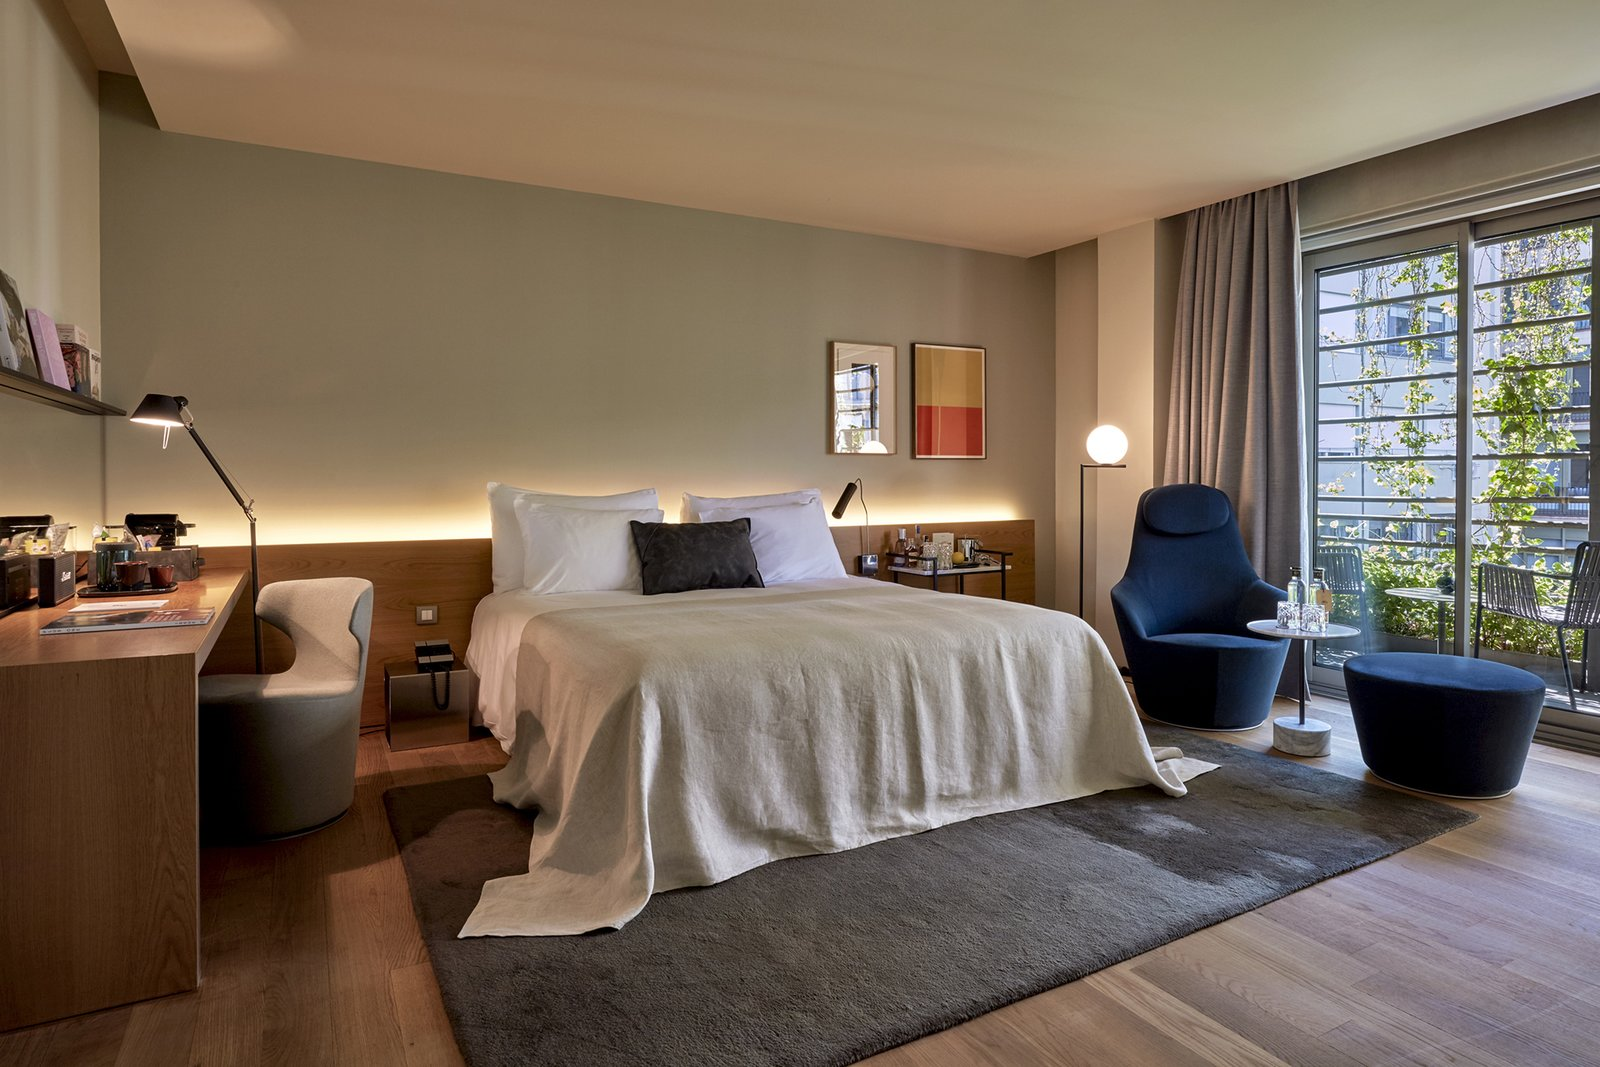 Bedroom, Bed, Night Stands, Table, Floor, Shelves, and Medium Hardwood The accommodations vary in size and layout—this room faces an interior courtyard.  Bedroom Medium Hardwood Floor Night Stands Photos from Barcelona's Hottest New Hotel Draws Inspiration From a Rebellious Female Author